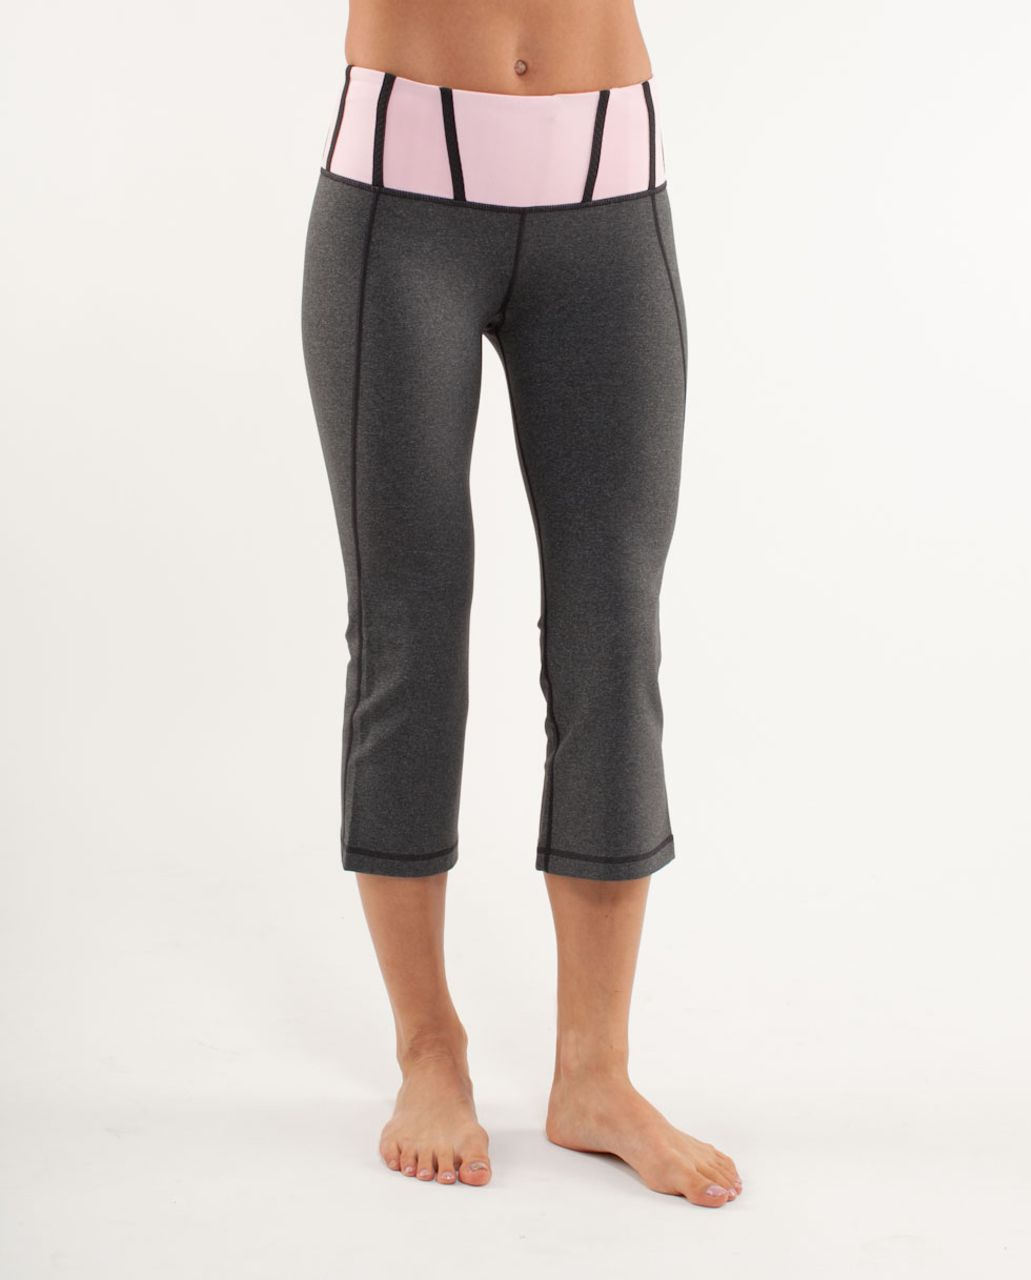 Lululemon Tadasana Slit Crop - Heathered Deep Coal /  Pig Pink